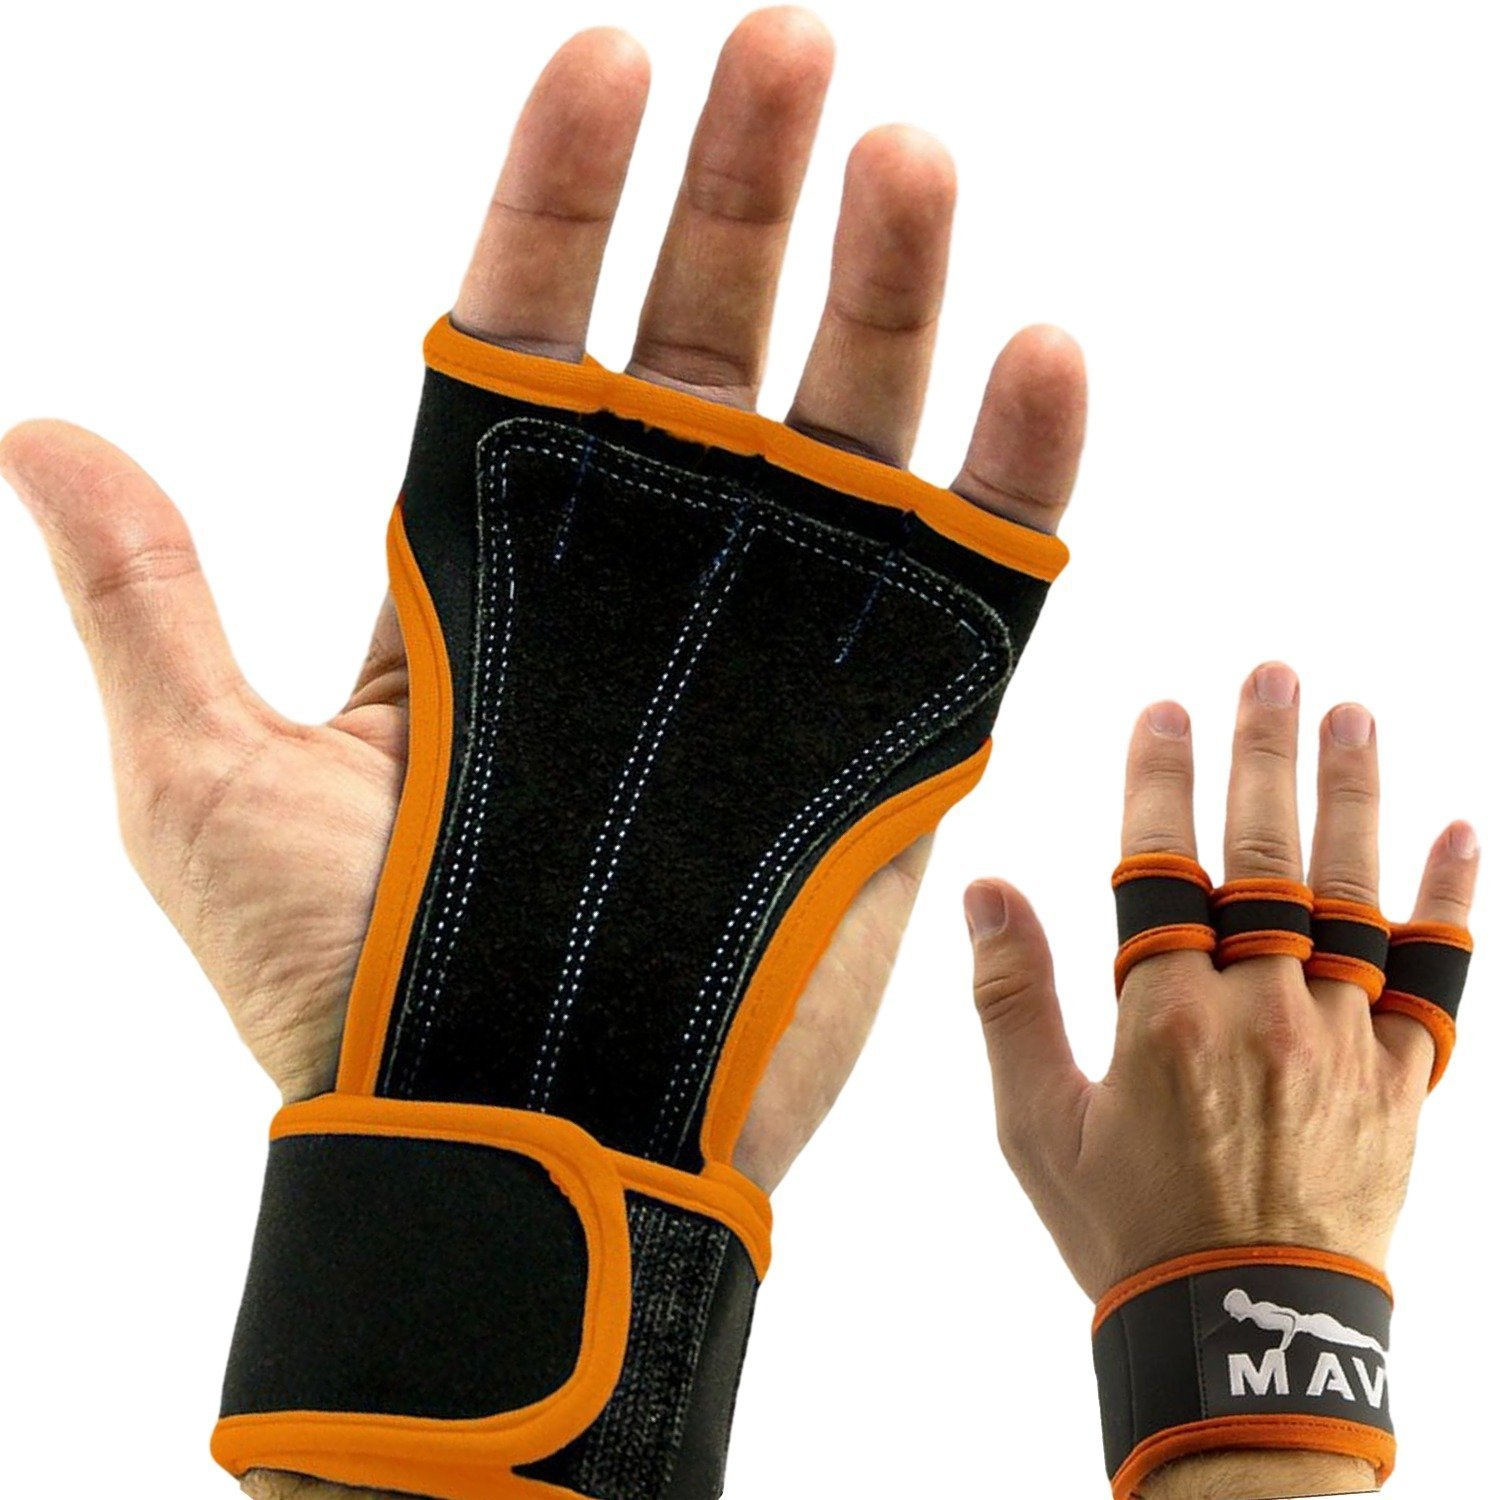 1eb5ebaf3e No Calluses-Suits Men & Women-Weight Lifting Sports & Fitness Mava Sports  Leather Padding Gloves Cross Training Gloves with Wrist Support ...